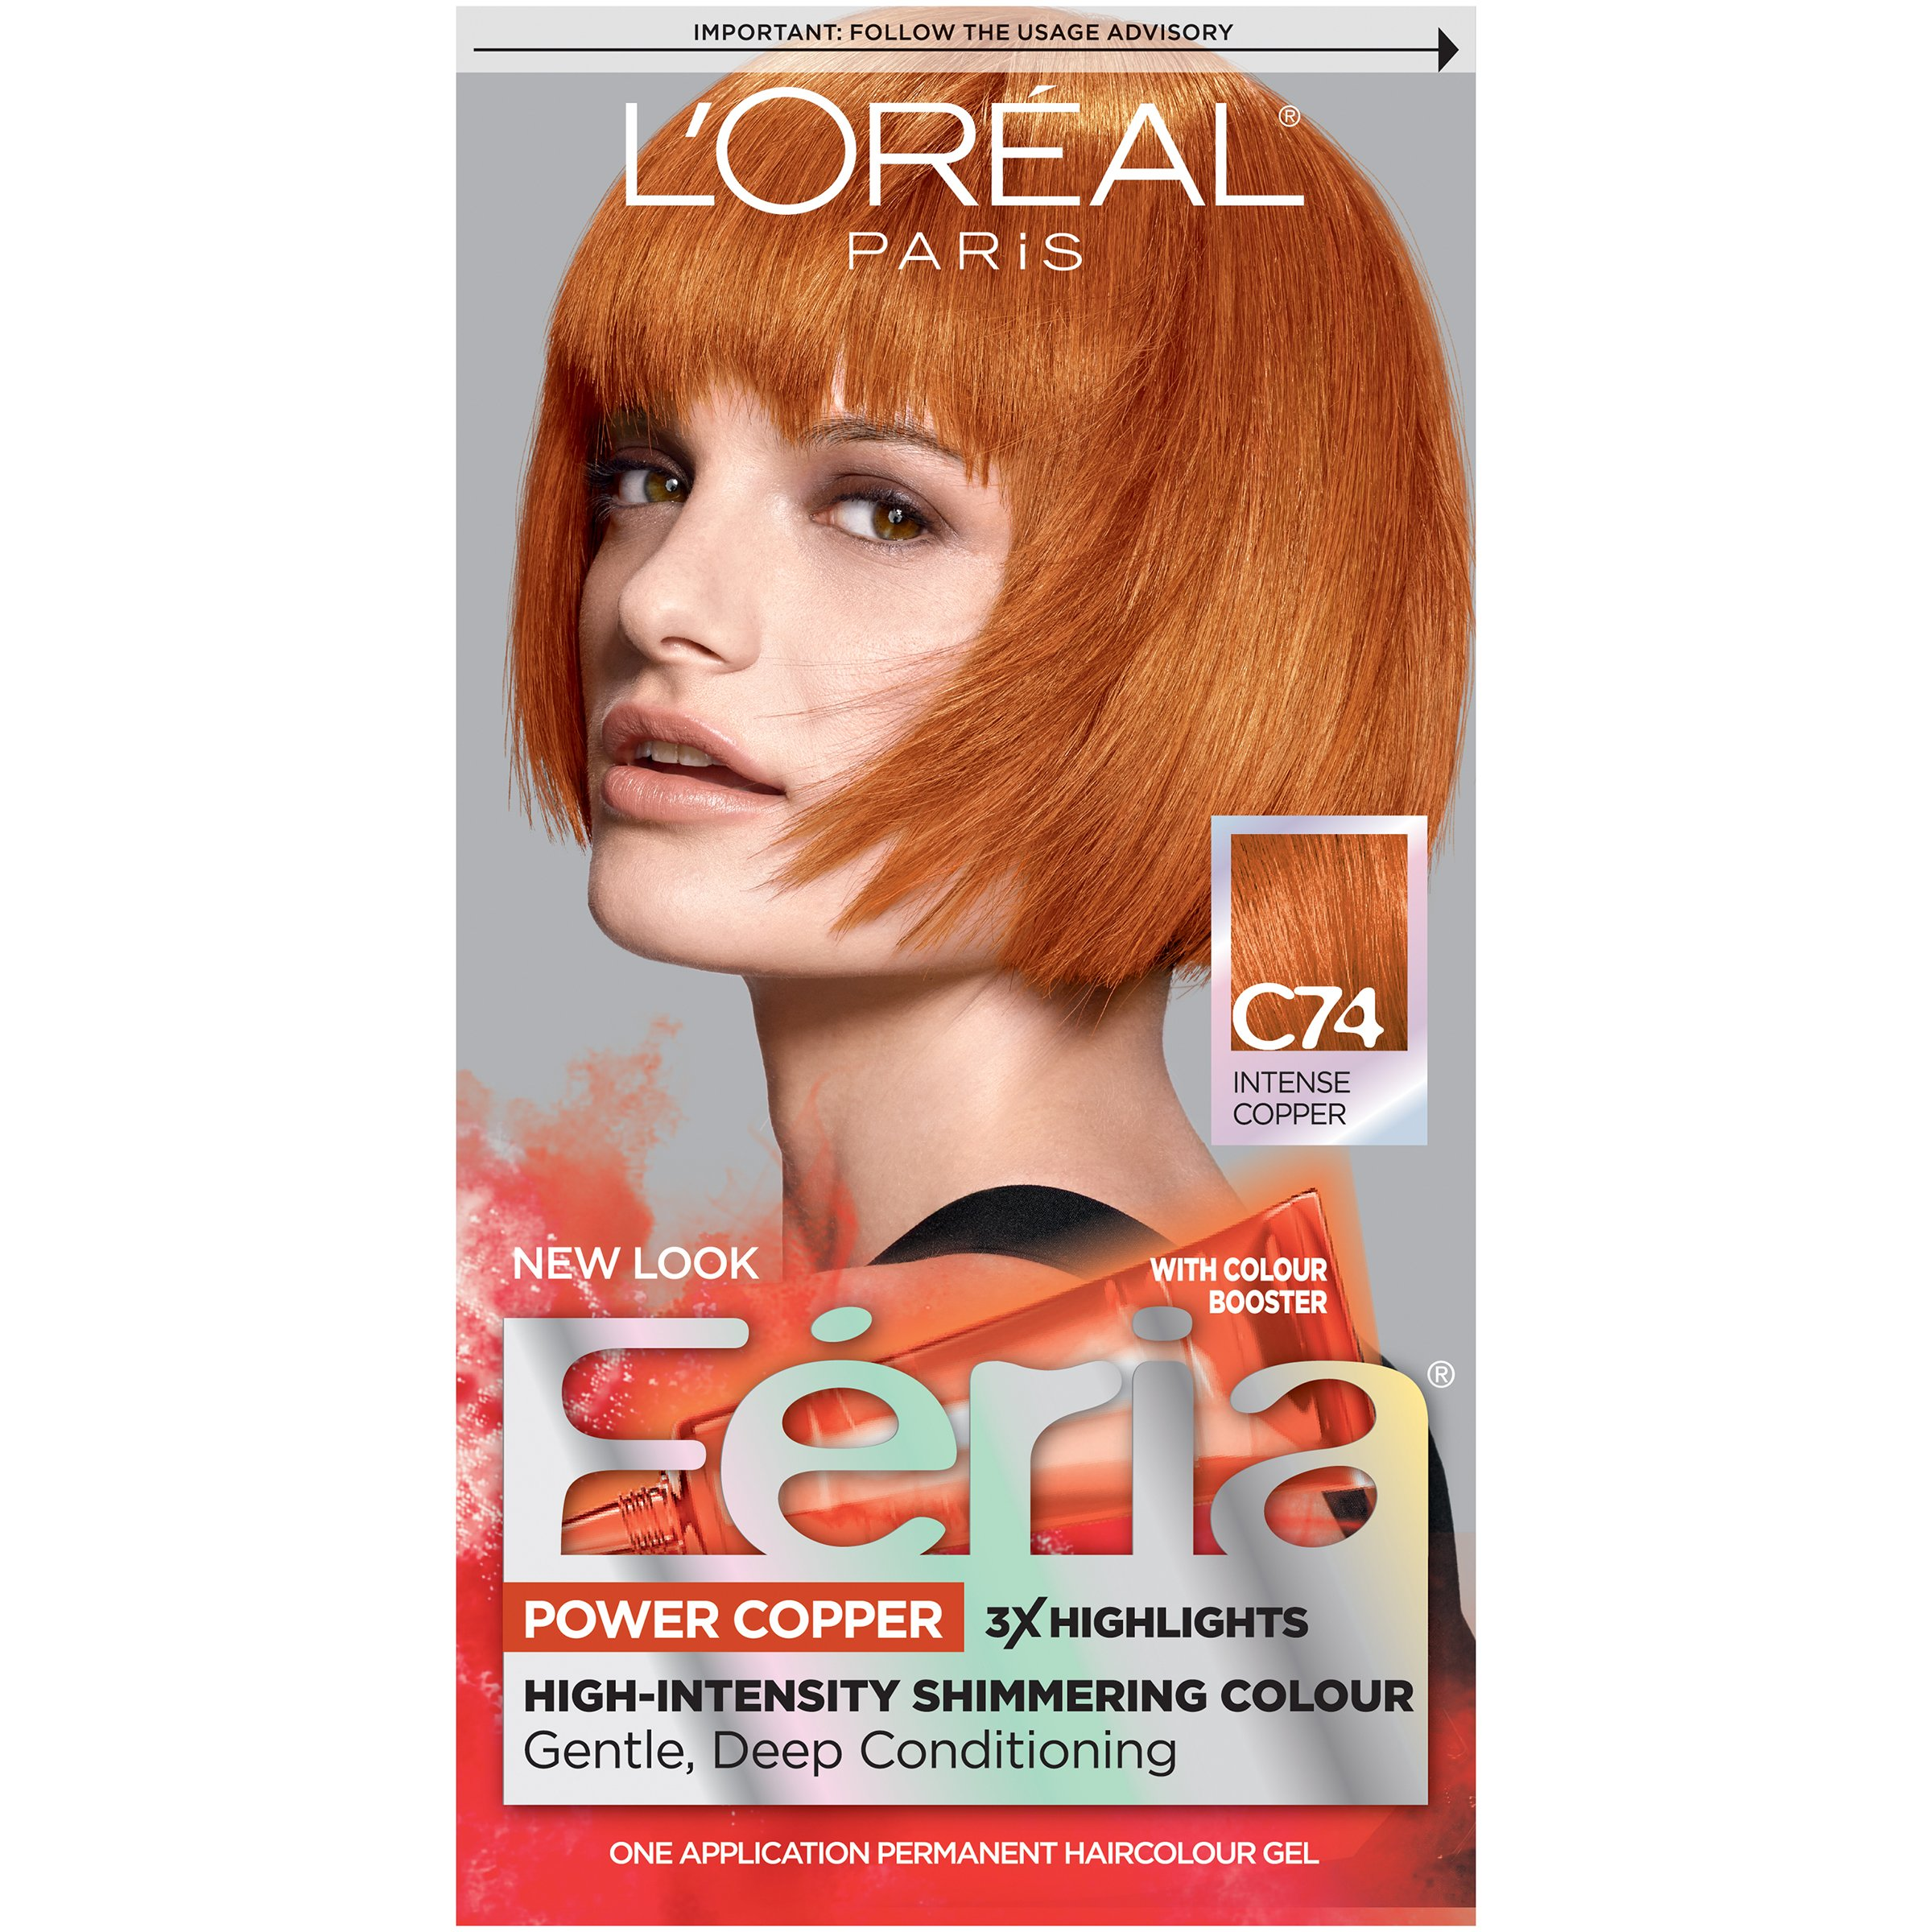 Amazon Loral Paris Feria Permanent Hair Color C74 Copper